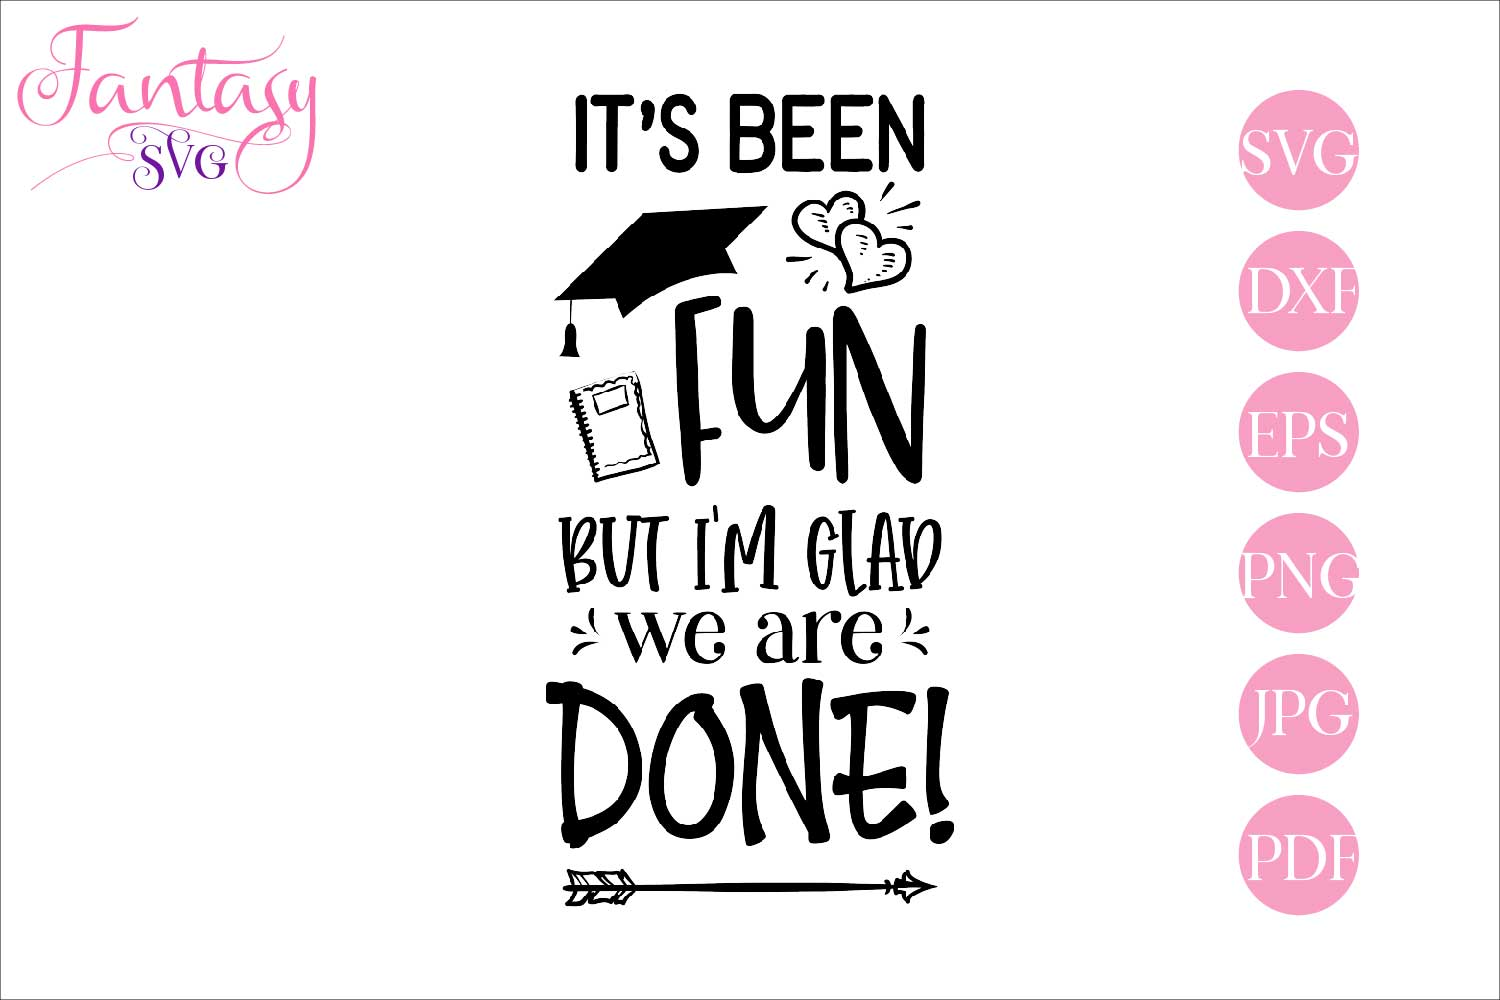 Download Free Its Been Fun But Im Glad We Are Done Graphic By Fantasy Svg for Cricut Explore, Silhouette and other cutting machines.